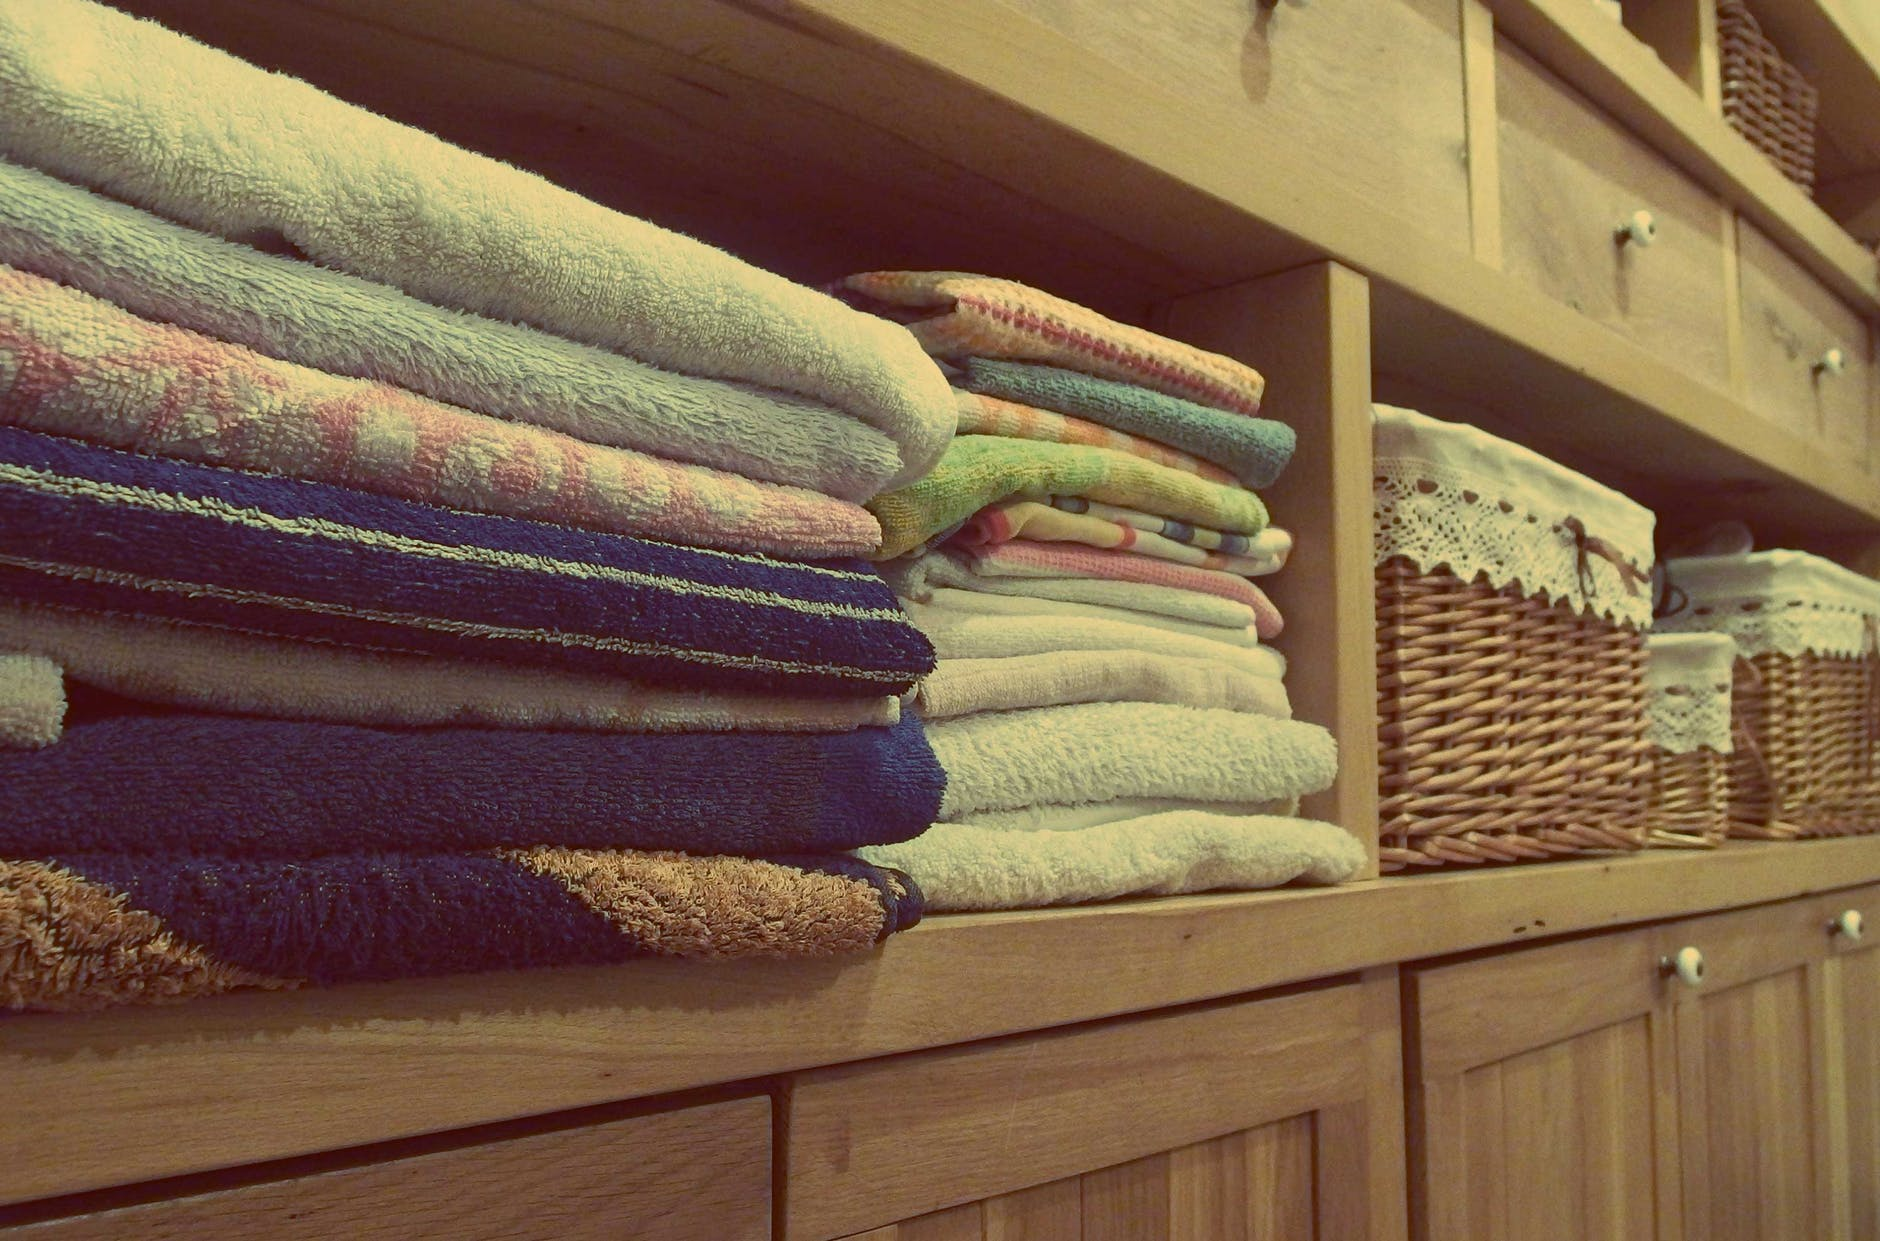 How To Keep Your Clothes Bright And Clean?